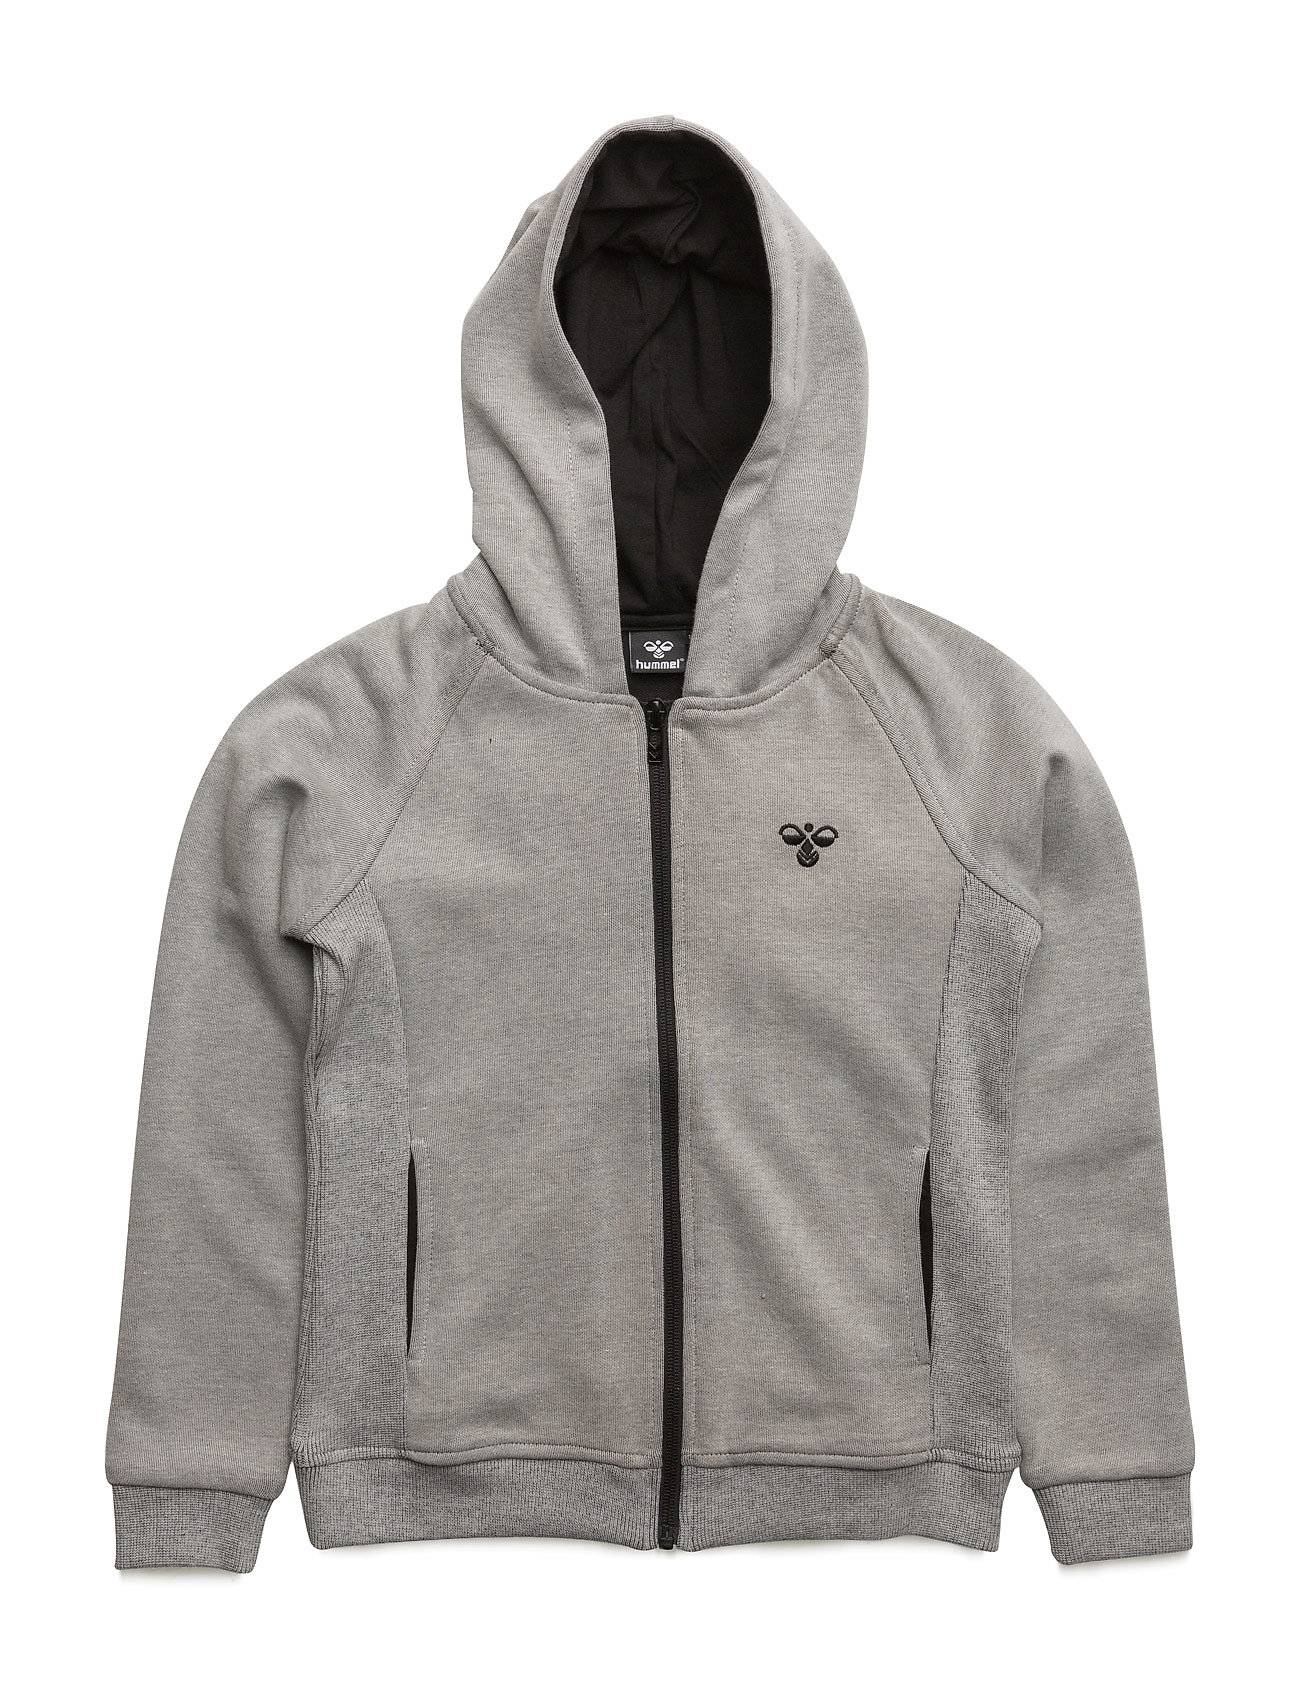 Hummel Nancy Zip Jacket